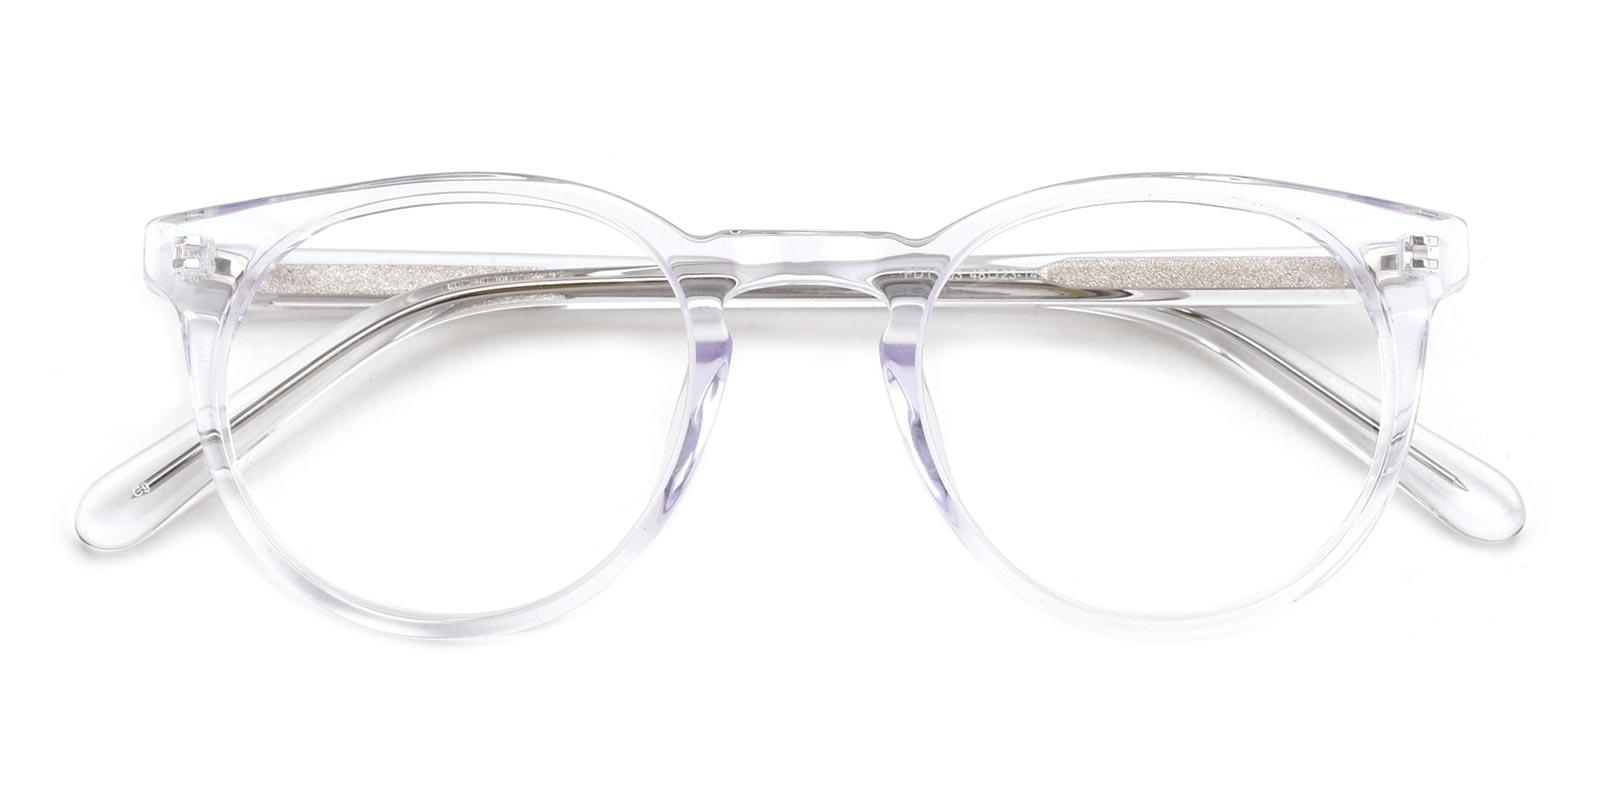 March-Translucent-Round-Acetate-Eyeglasses-detail